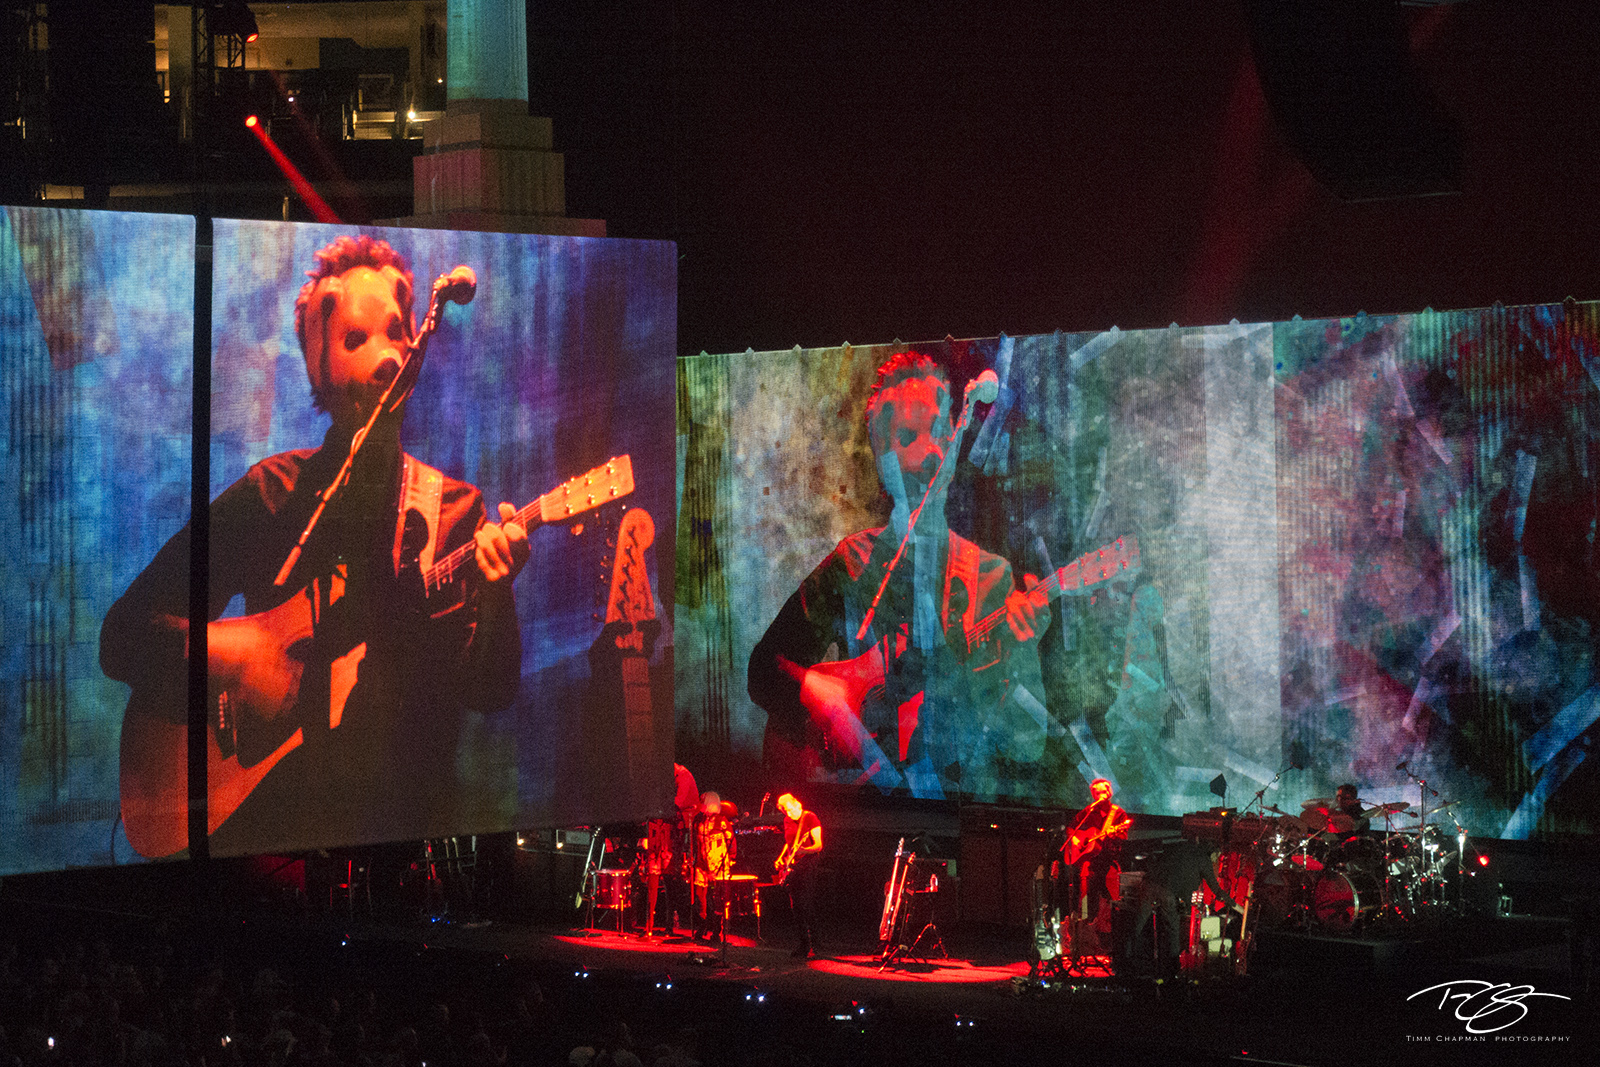 roger waters, pink floyd, in concert, performing, us + them, us and them, acoustic guitar, dogs, animals, visuals, projection, mask, photo